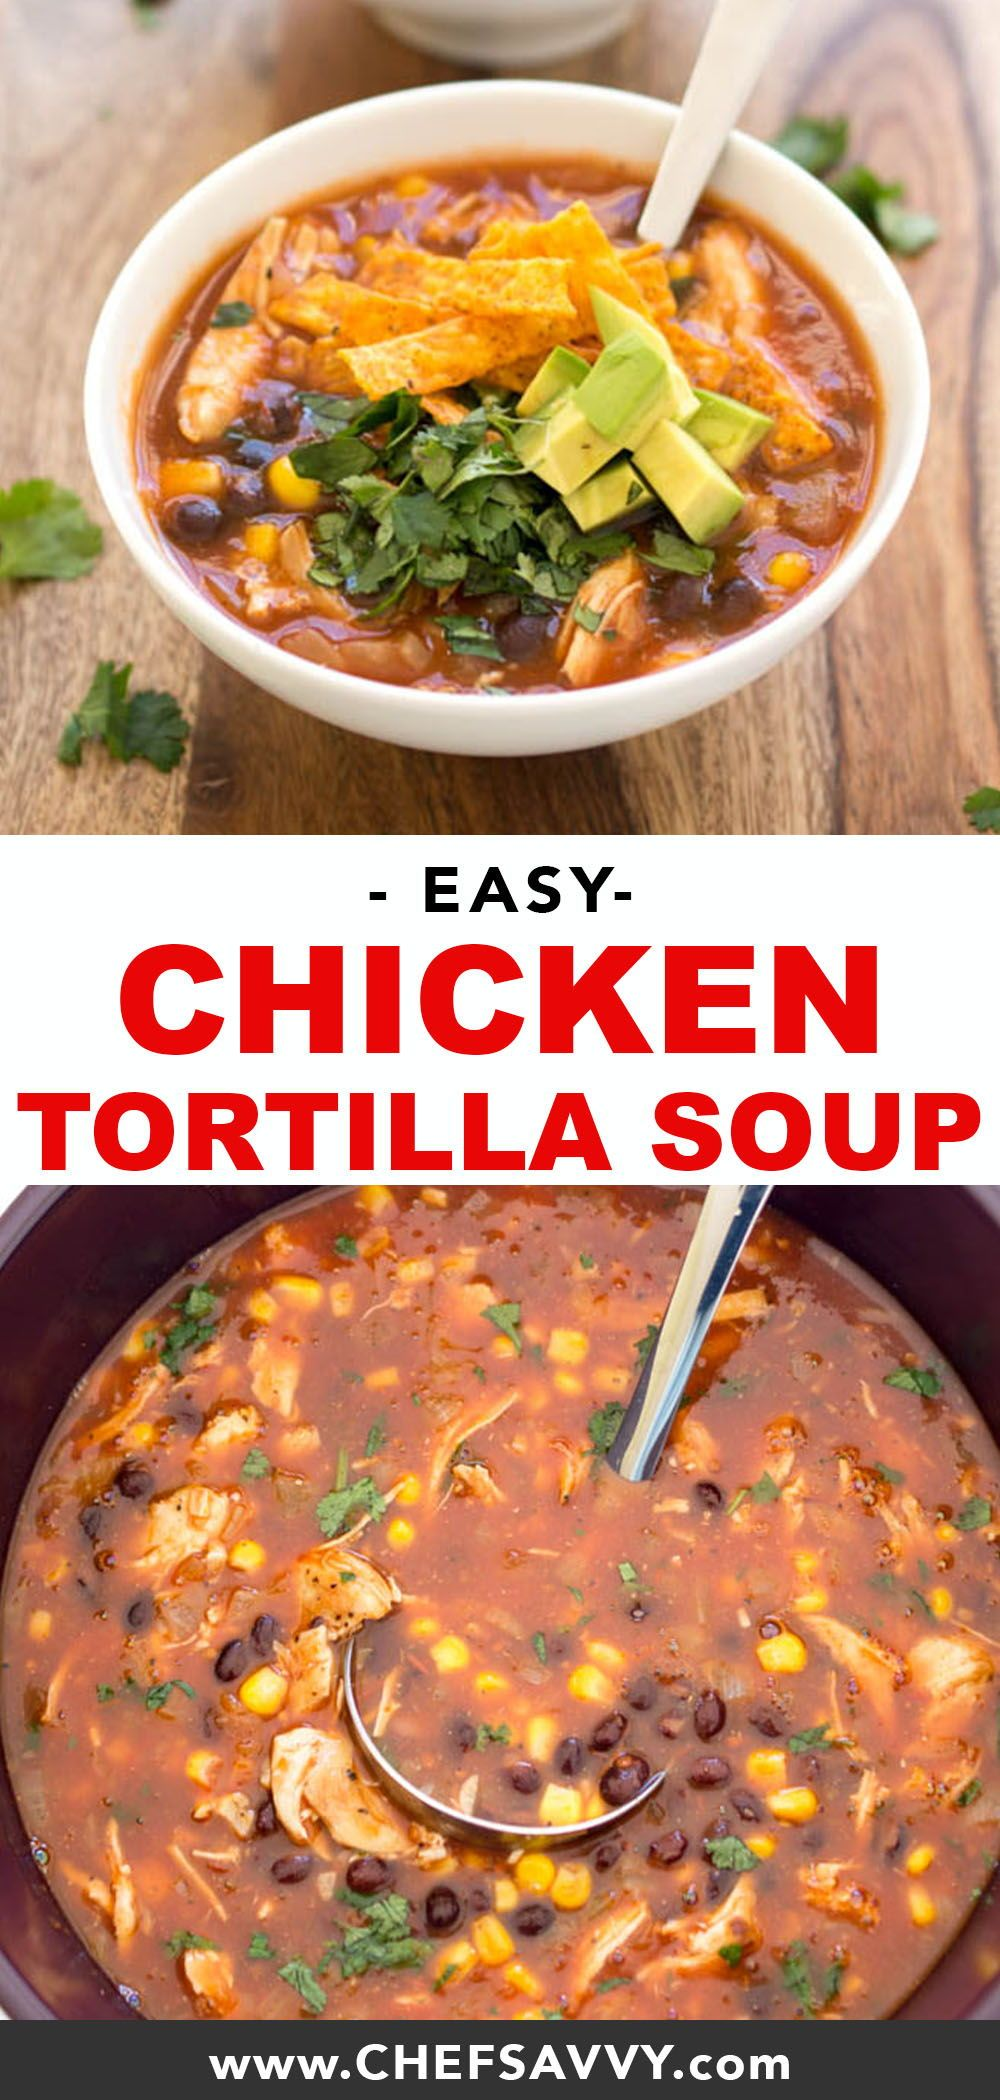 Easy 20 Minute Chicken Tortilla Soup - Chef Savvy